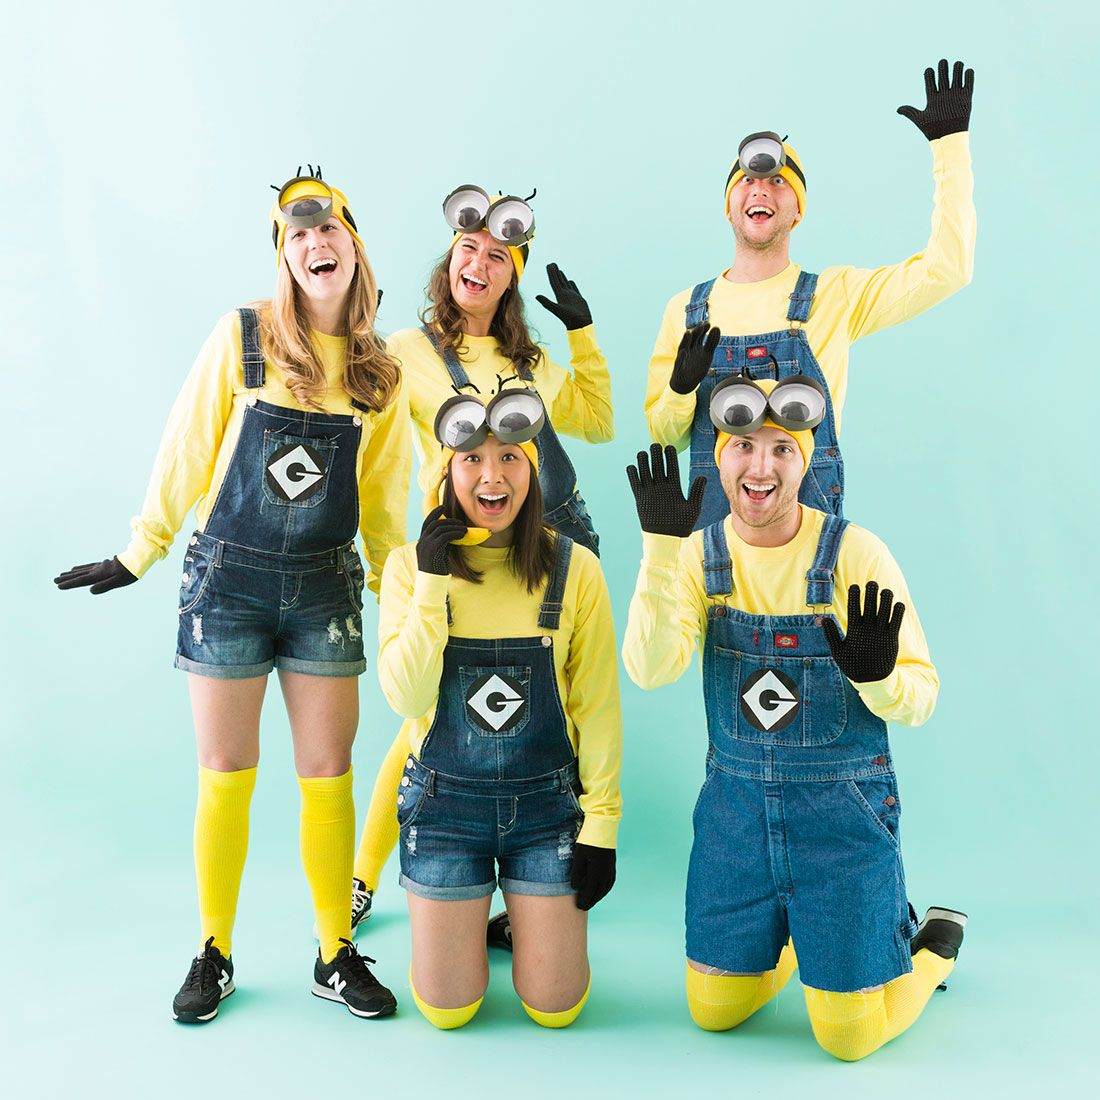 make minion costumes for your squad this halloween - Group Of 4 Halloween Costume